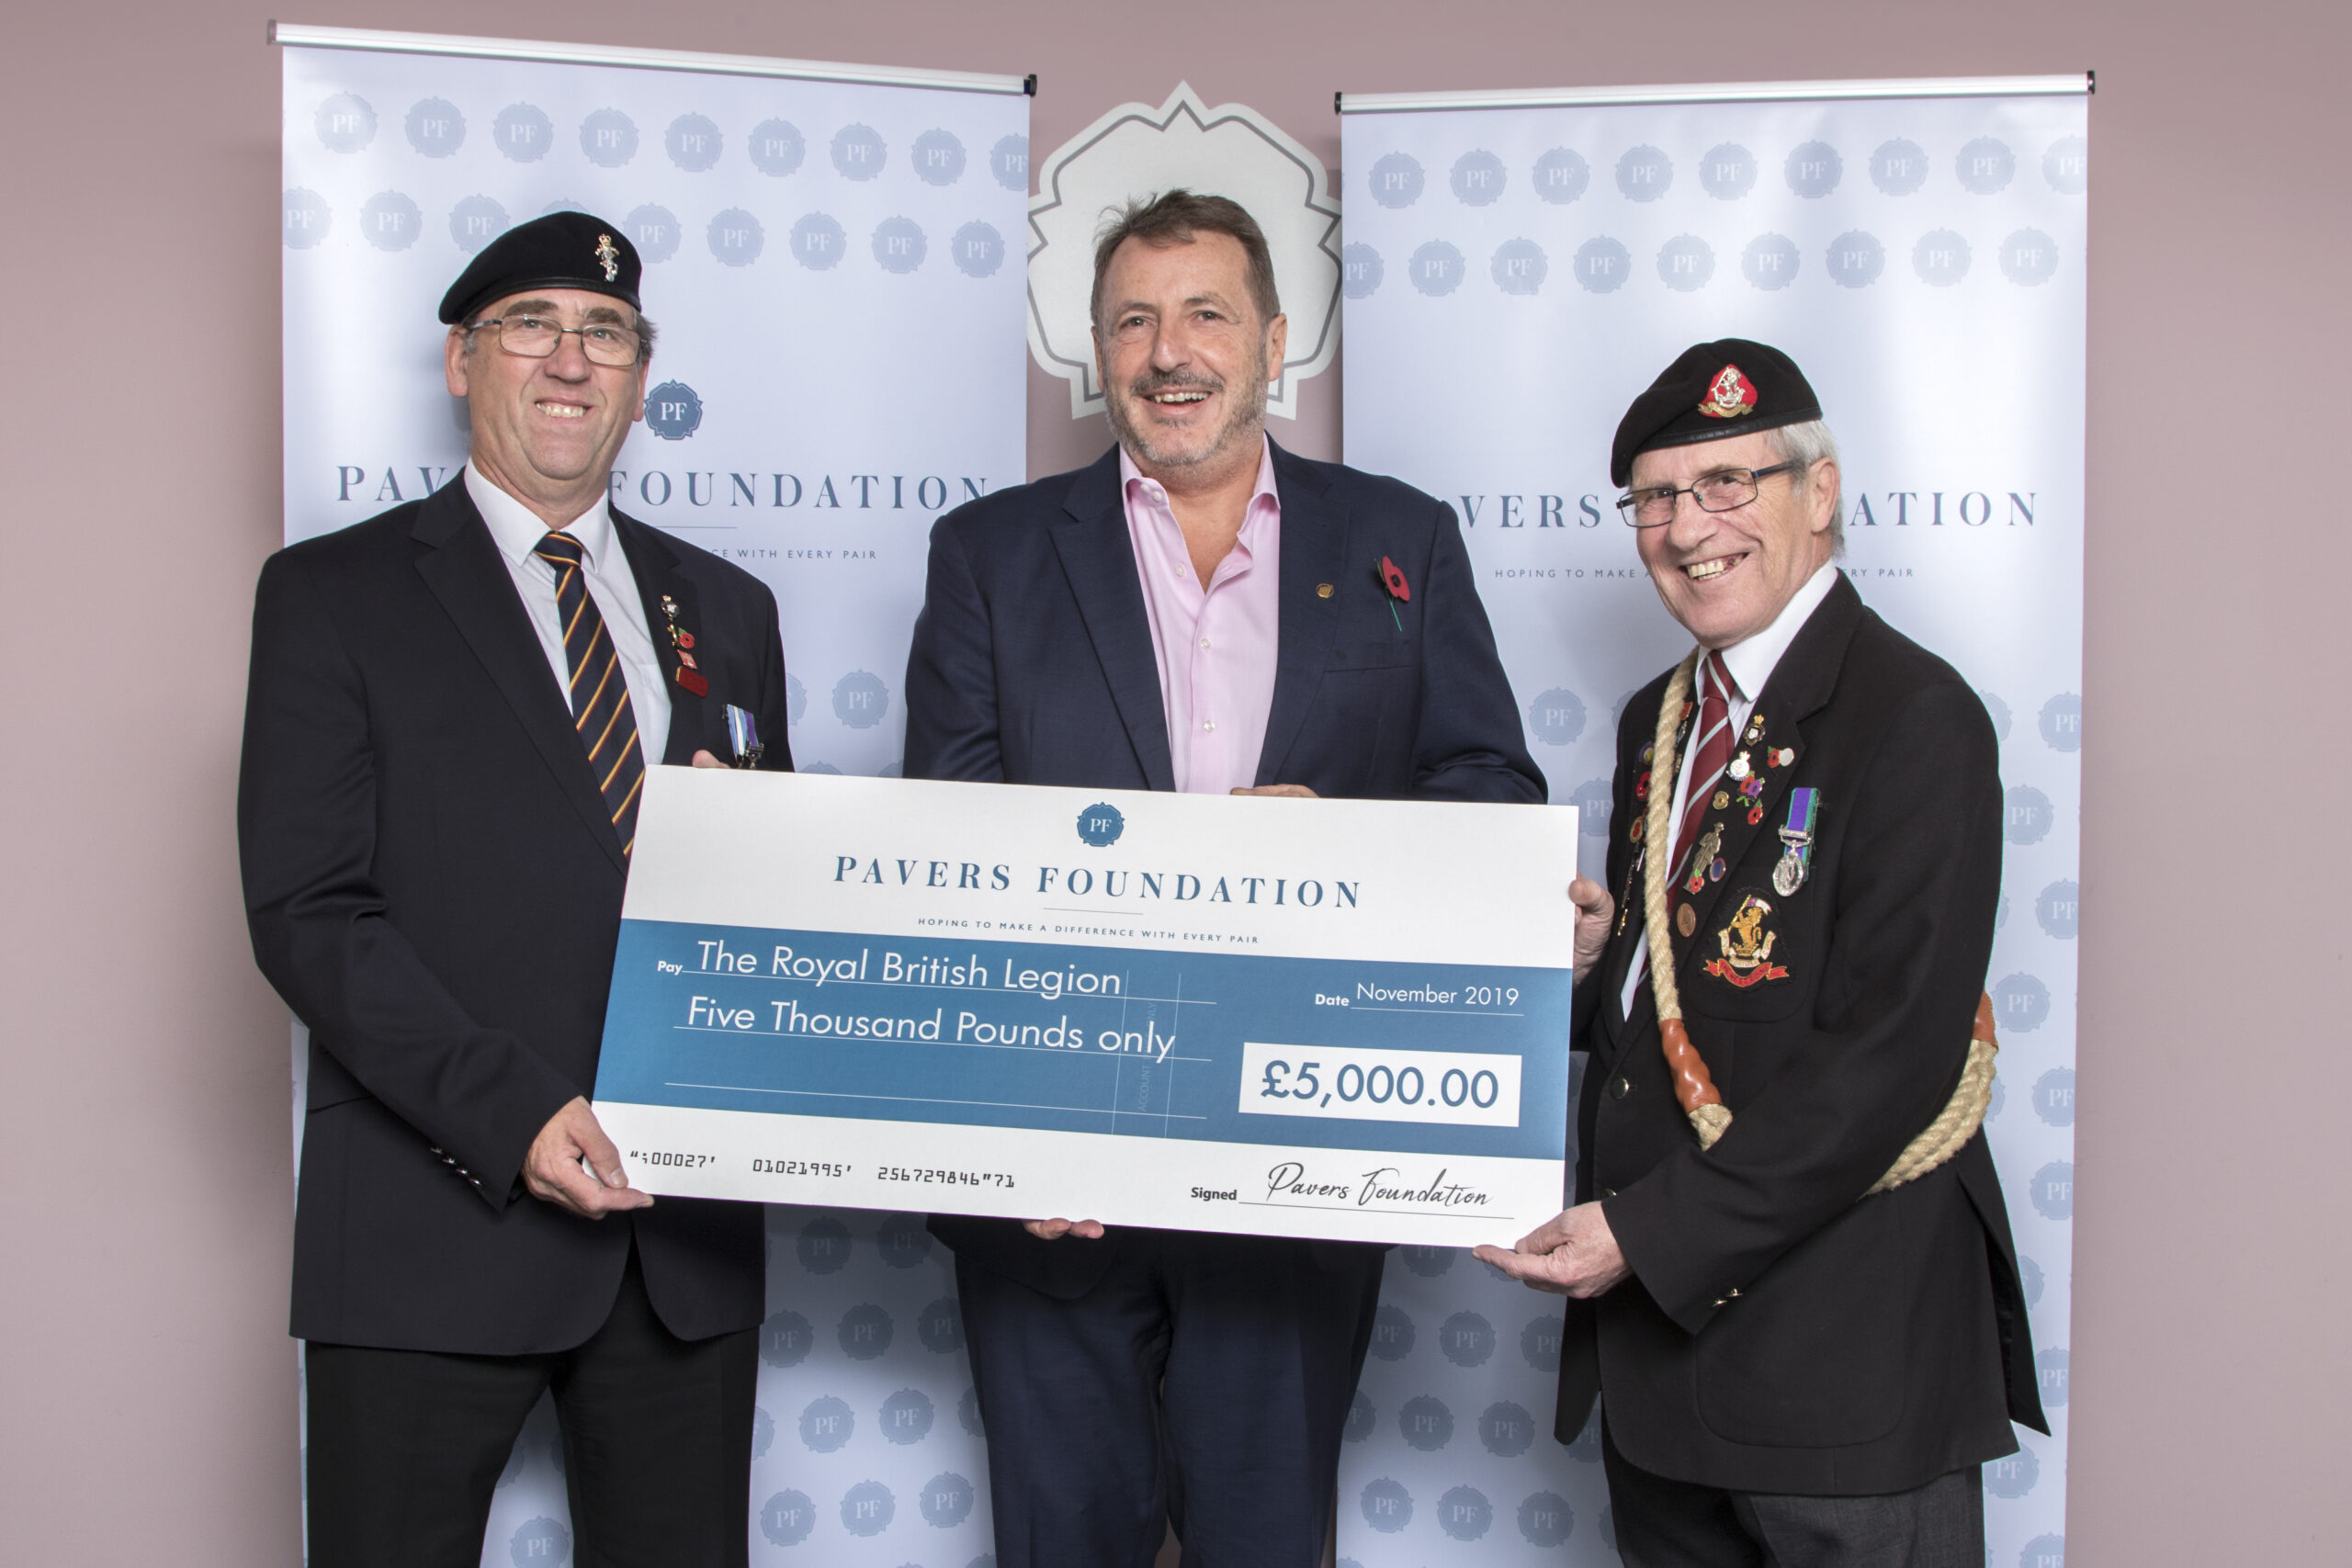 We have supported The Royal British Legion's Poppy Appeal!